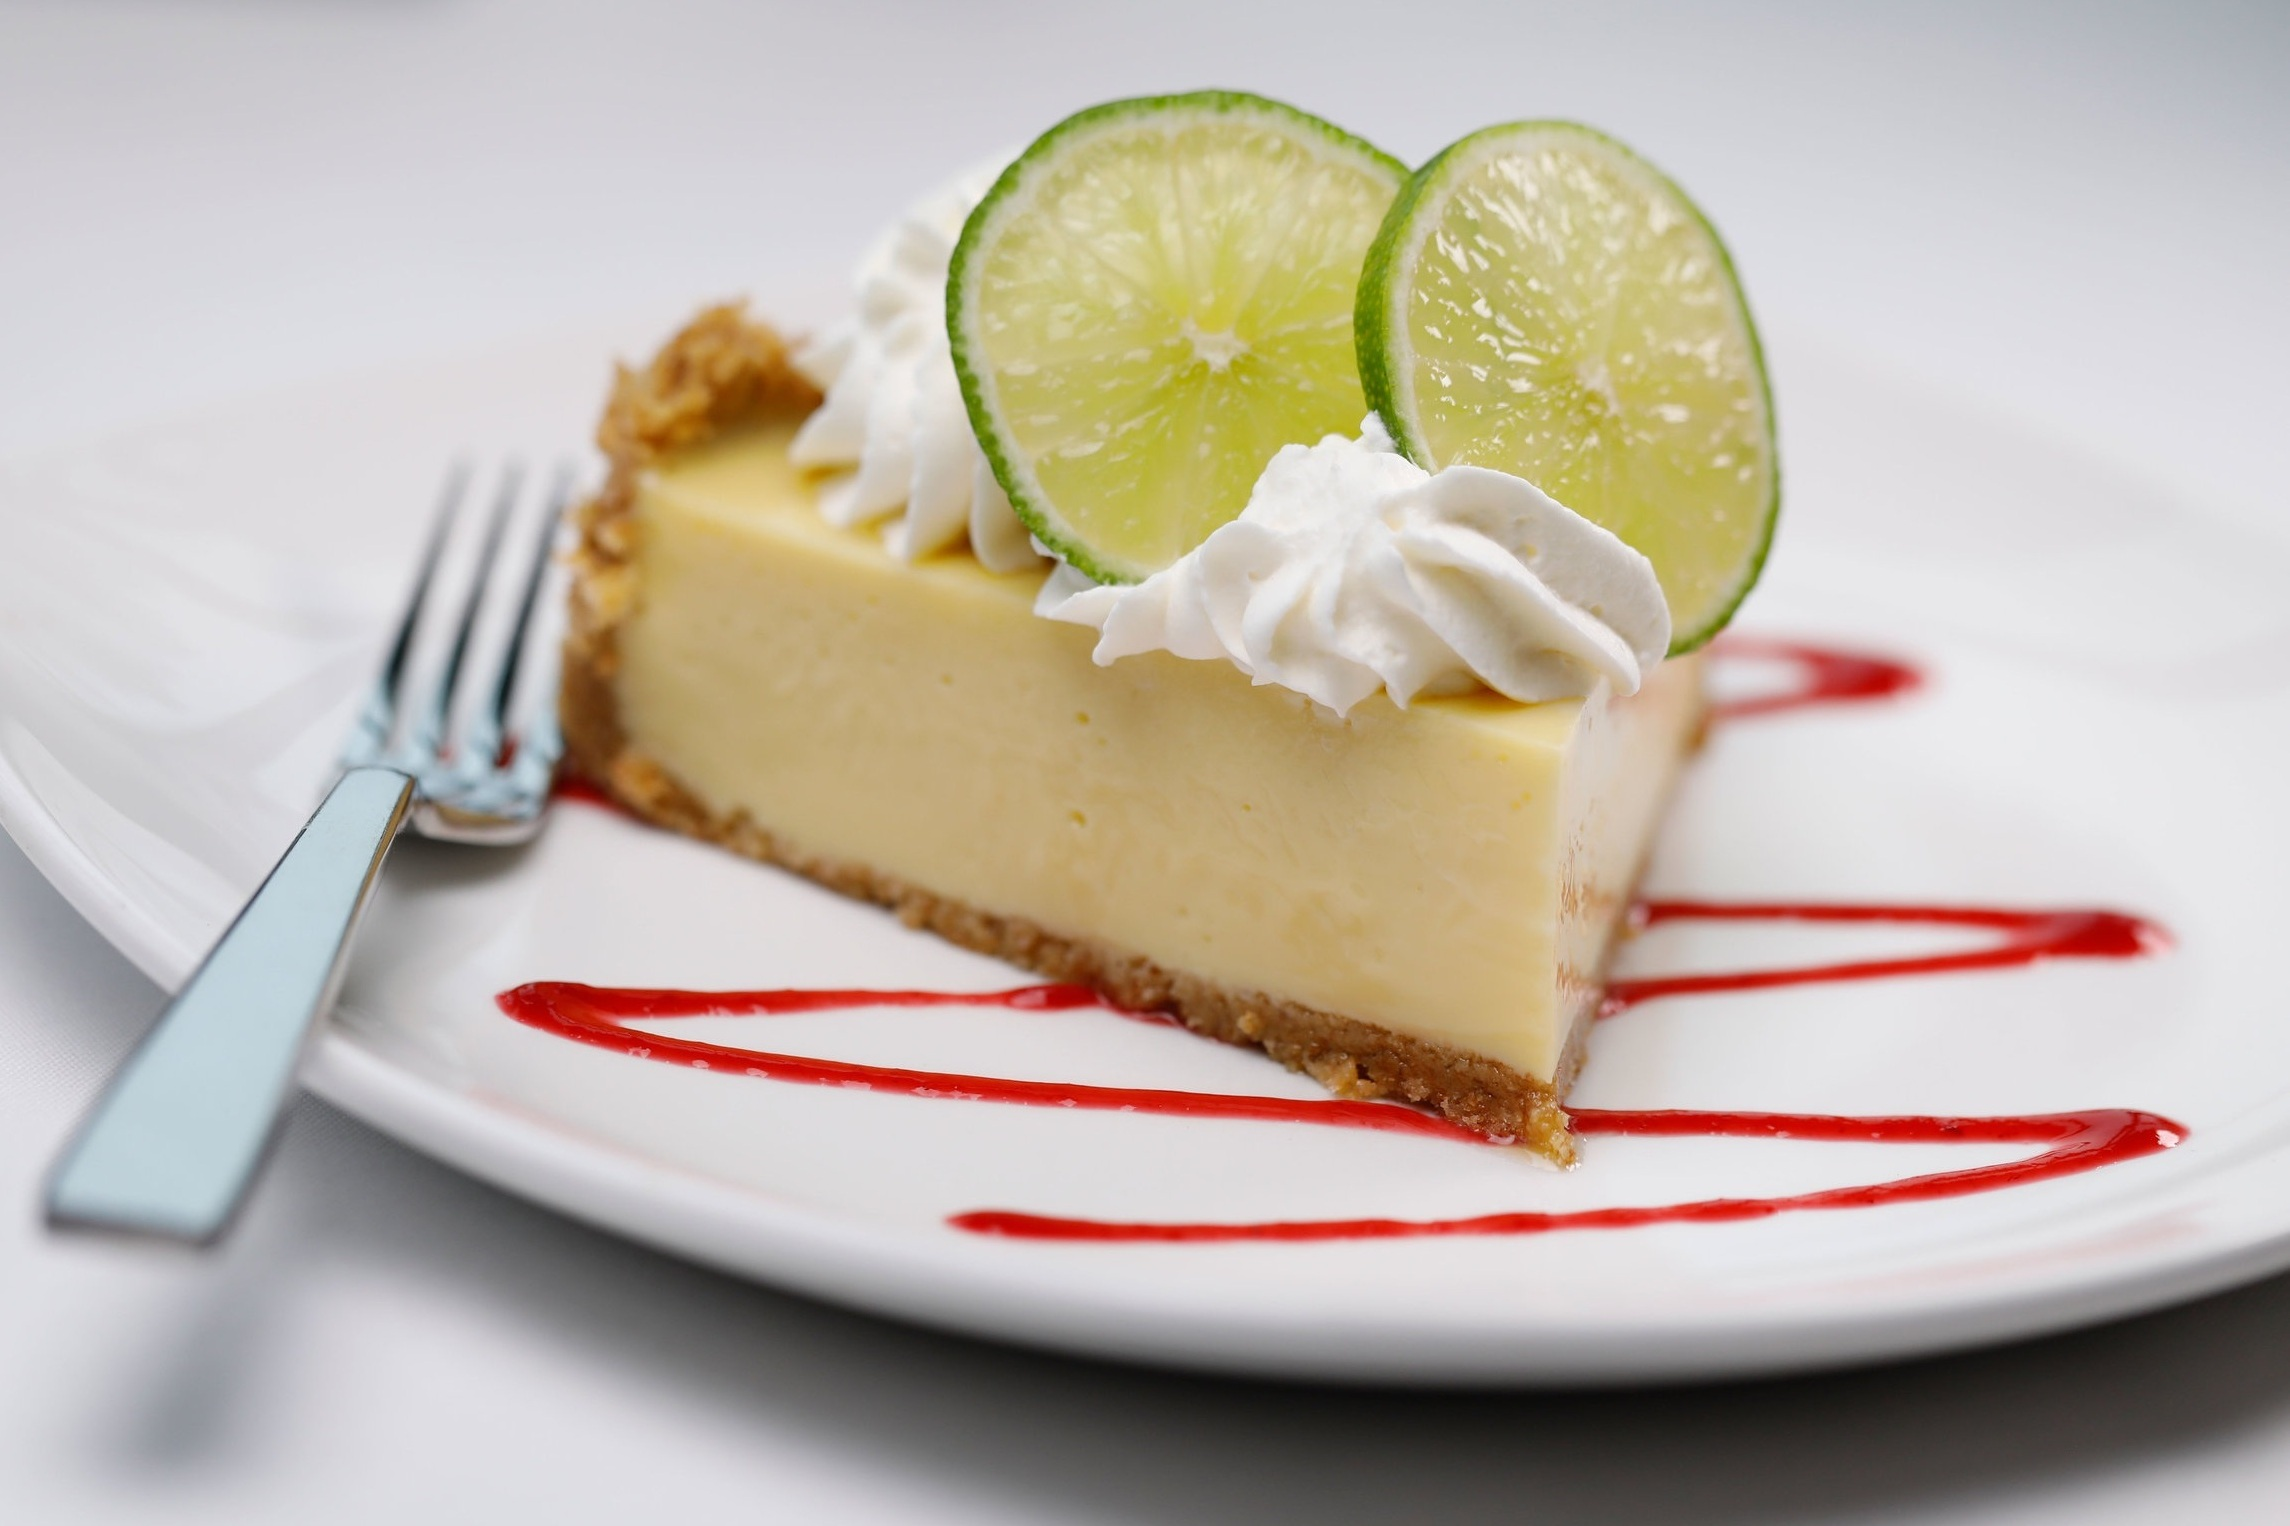 shanahans-key-lime-pie.jpg